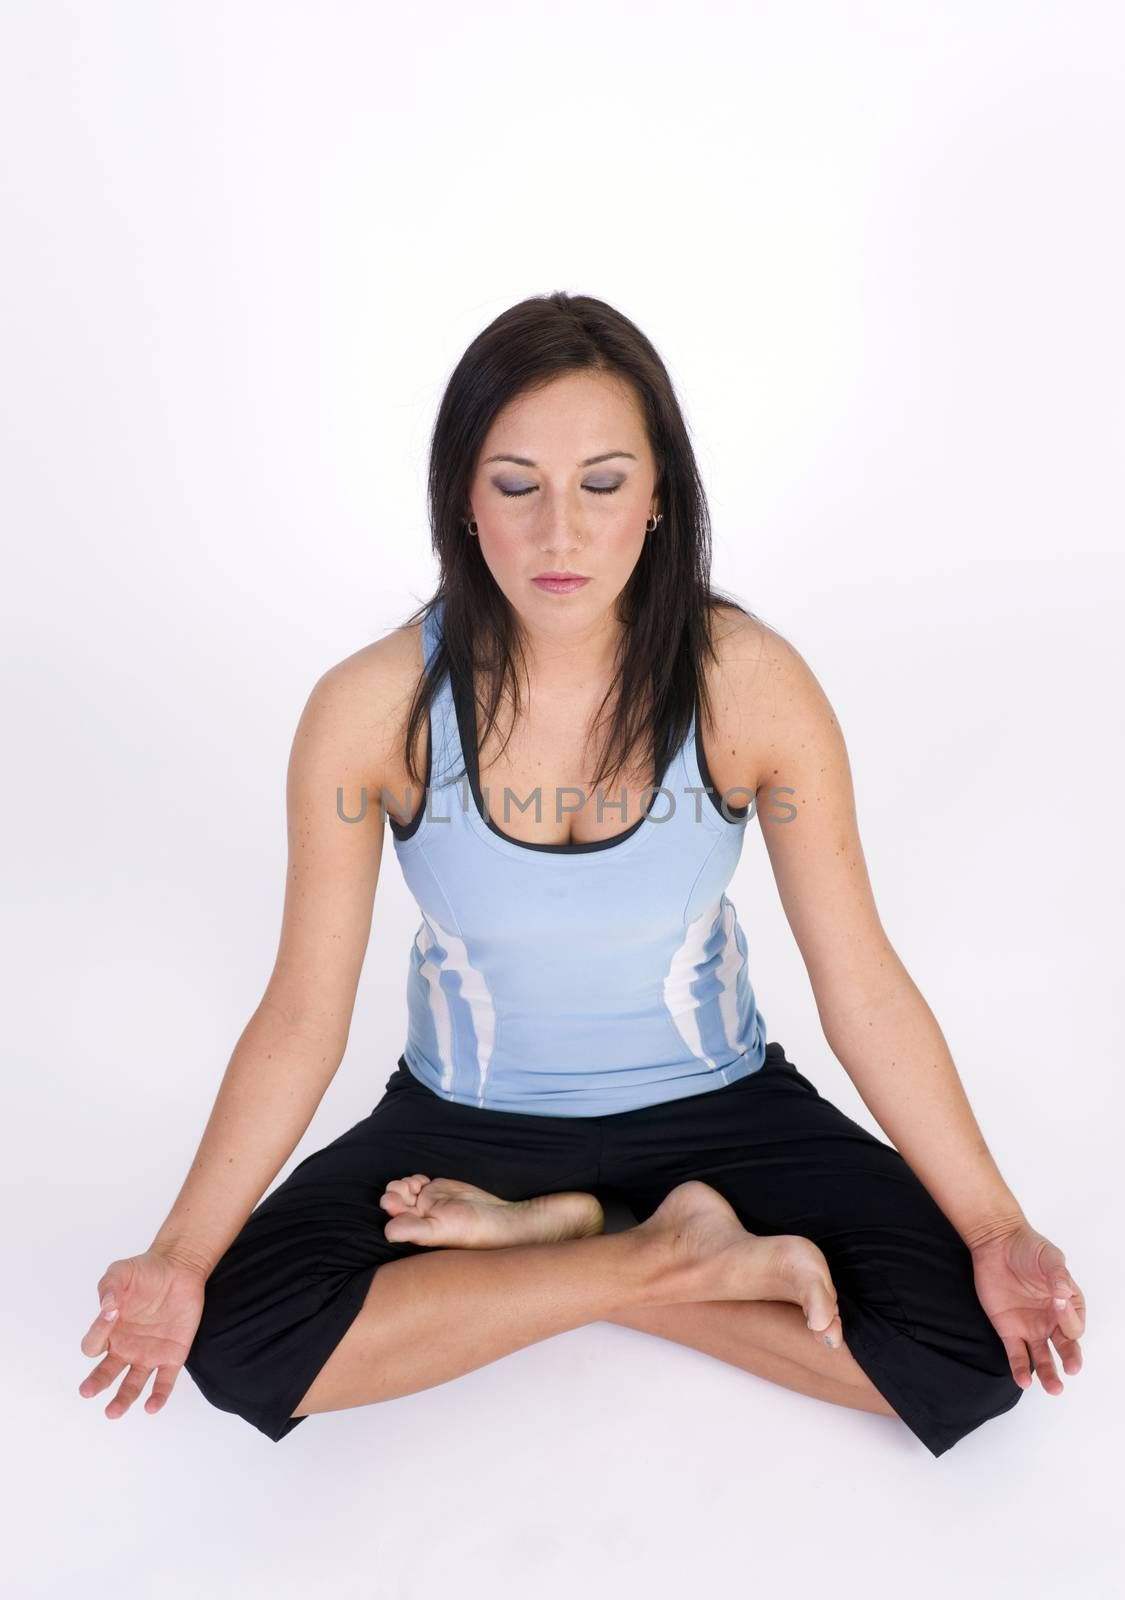 A woman during her Yoga Practice